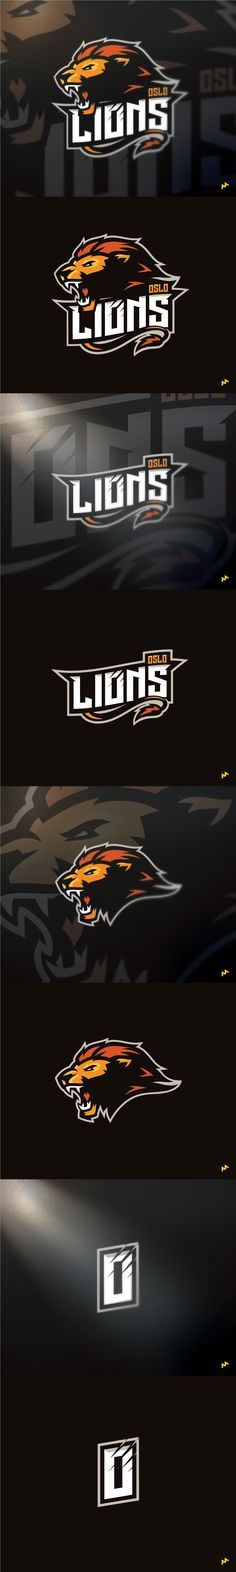 Oslo Lions on Behance                                                                                                                                                                                 Más